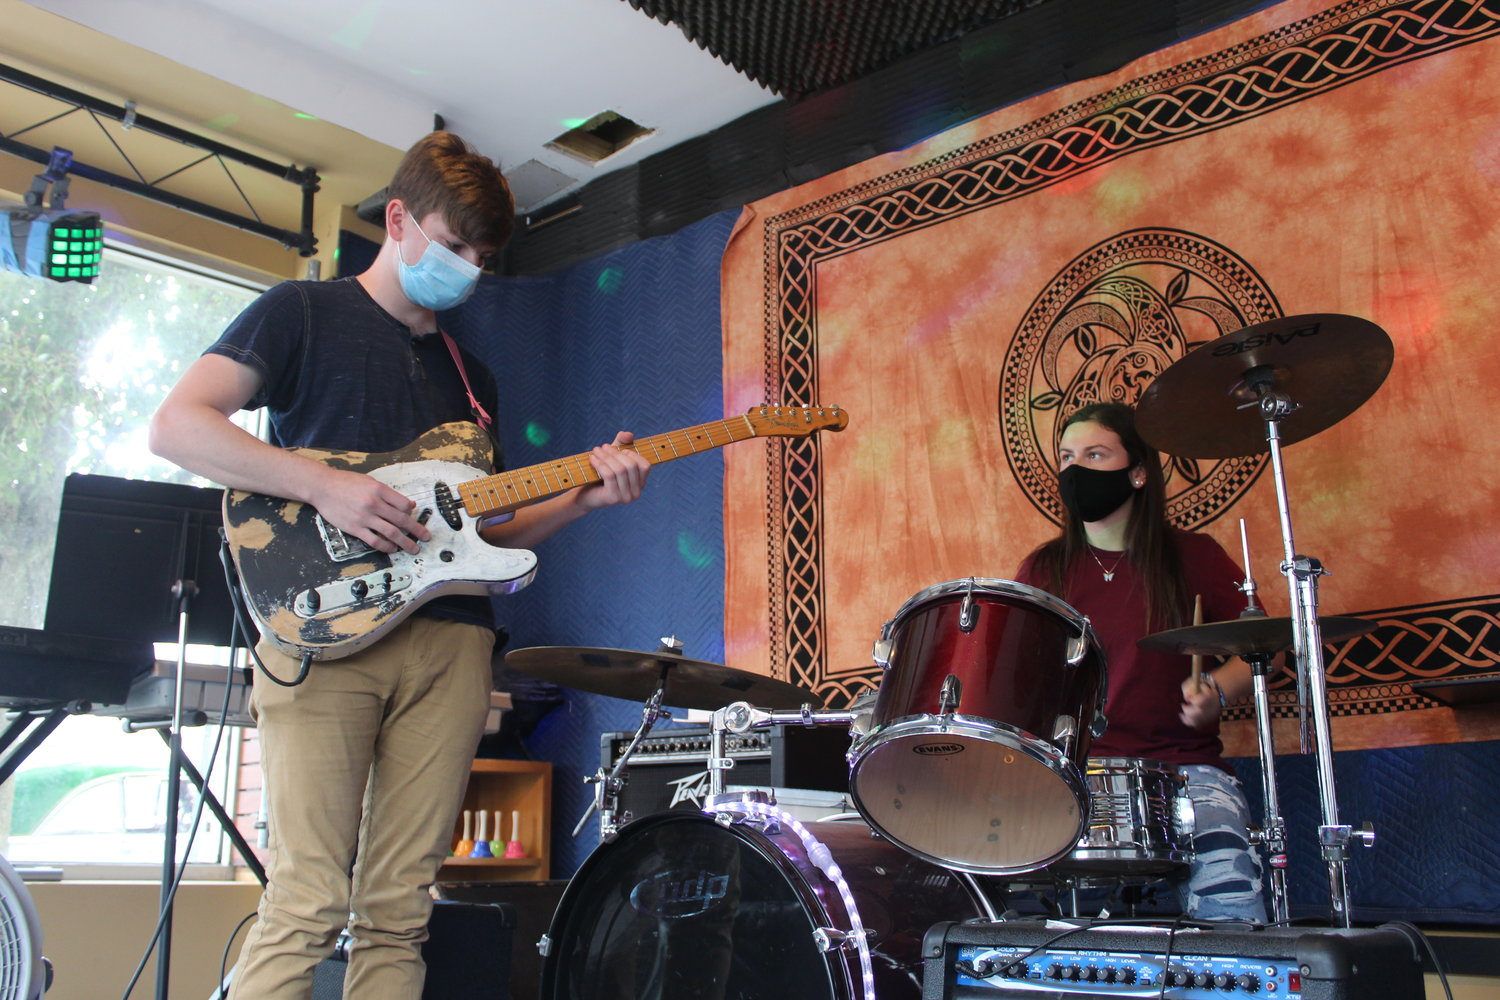 Bellmore residents Thomas Stoerger and Juliette Kealy, both 21, were some of the first students to enroll at The Rock Underground when it opened on Bedford Avenue 10 years ago. Now, they are the ones teaching the next generation of musicians.